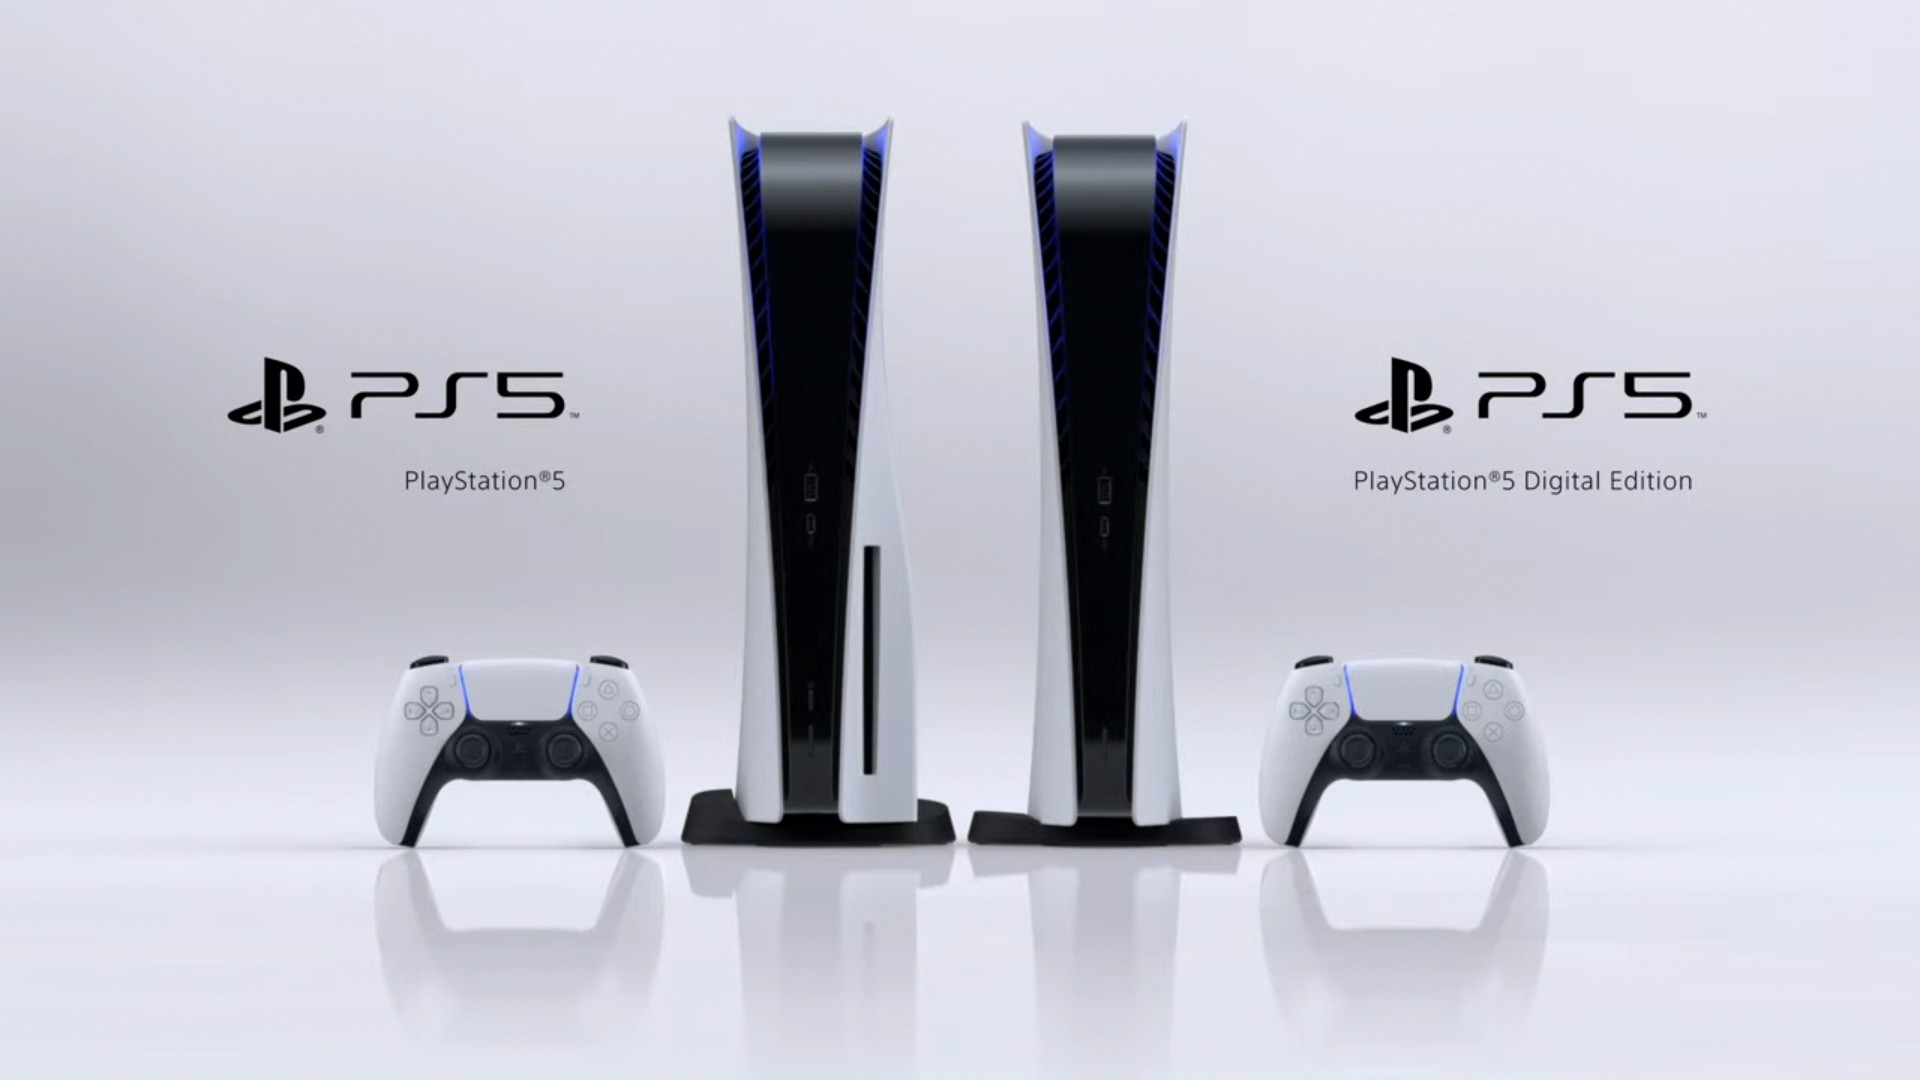 Sony Ps5 Complete Guide Release Date Price Tech Specs Psvr 2 Backwards Compatibility Playstation Universe